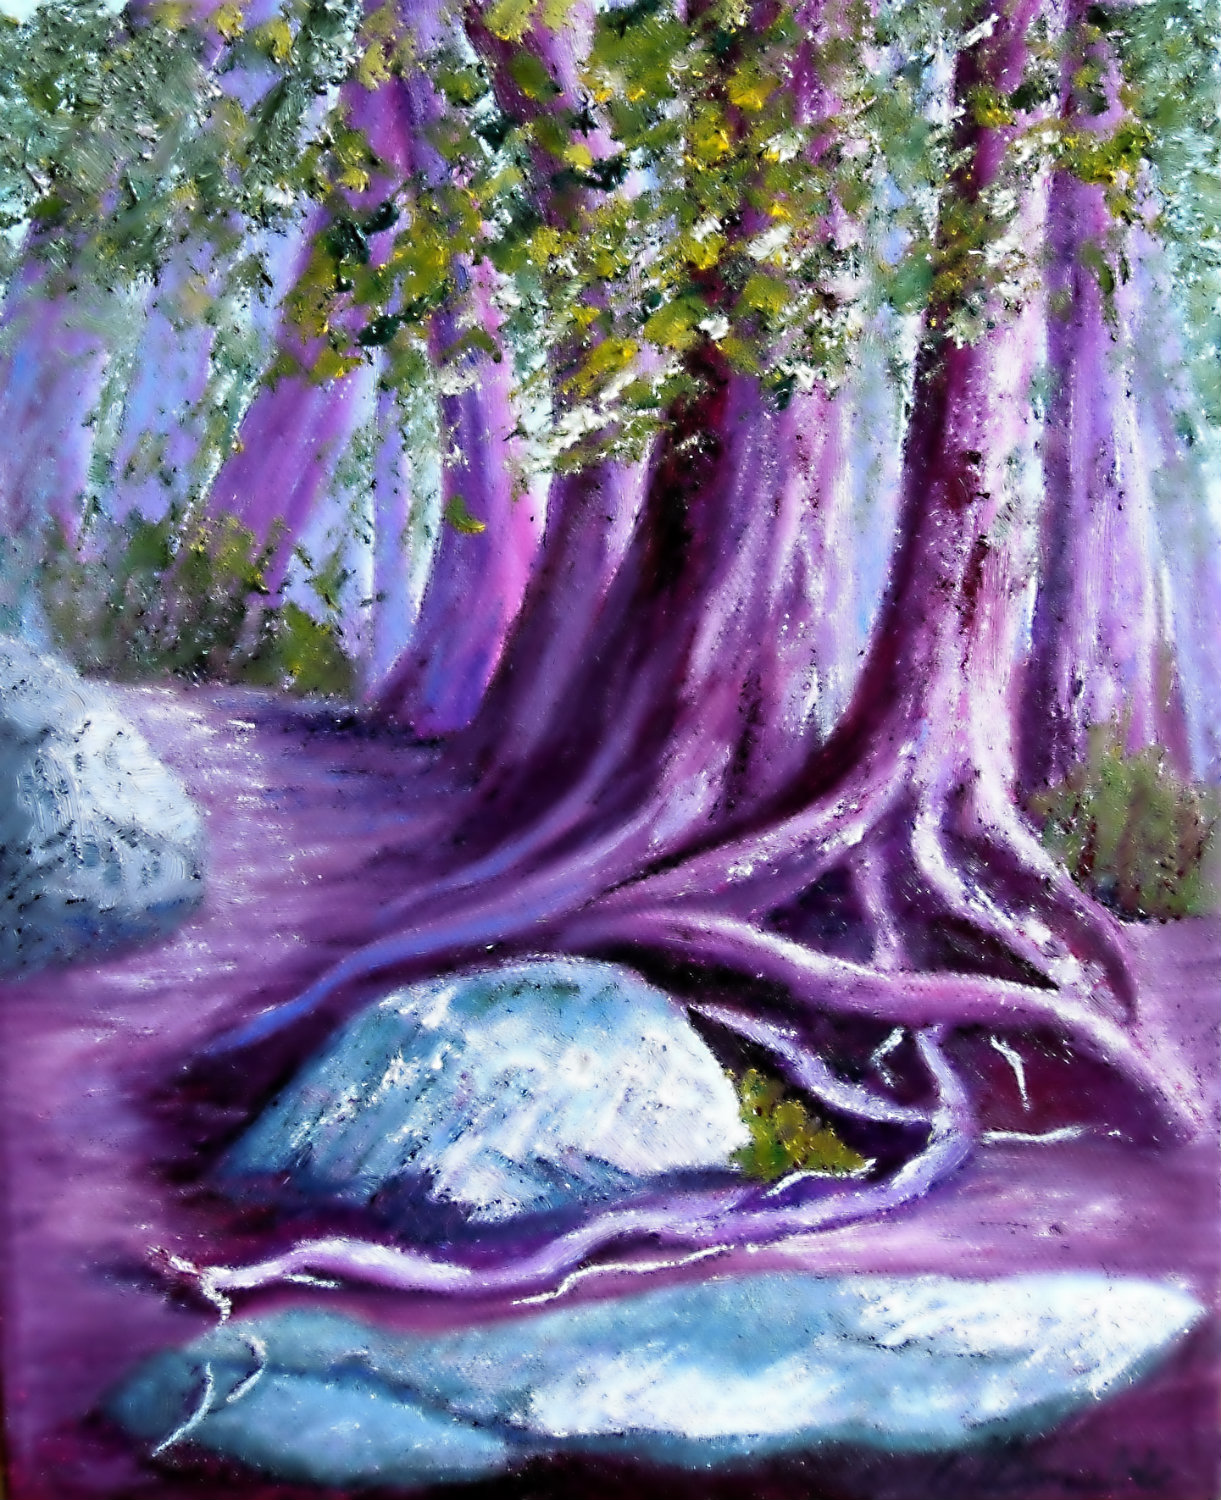 3638 - Firmly Rooted - Enchantment #2, Oil on Canvas, 10 x 8 inches, Copyright Wendie Donabie